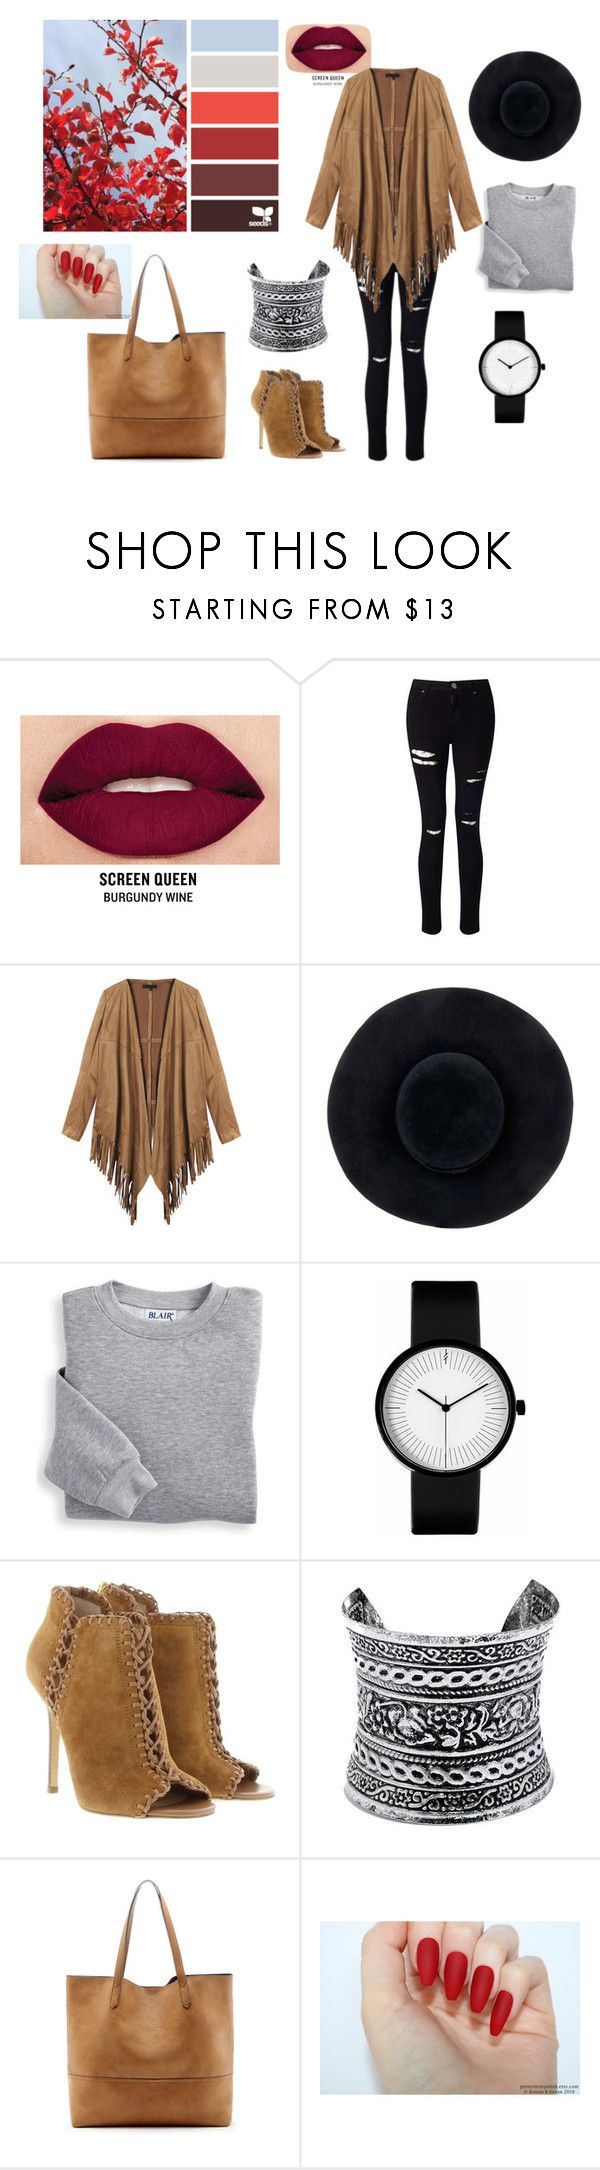 """AUTUMN SET _ by Bunny"" by sweetlittlebunny on Polyvore featuring moda, Smashbox, Miss Selfridge, Eugenia Kim, Blair, Michael Kors, LULUS i Sole Society"